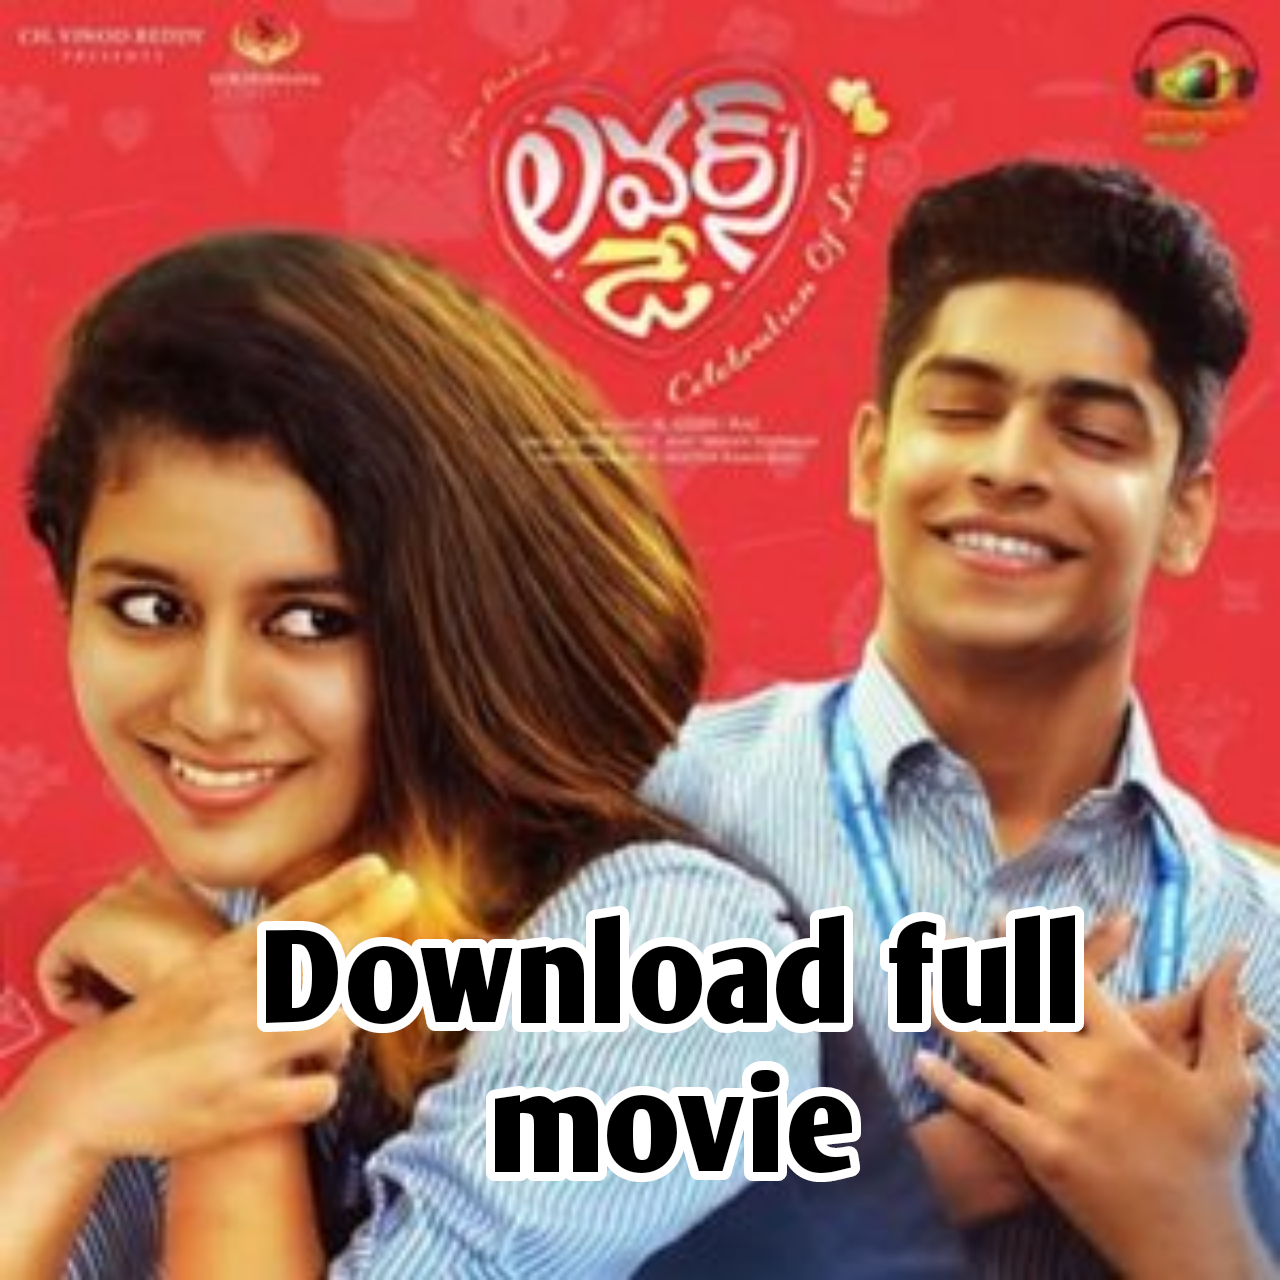 New movie download sites telugu | Movierulz: Free HD English, Hindi